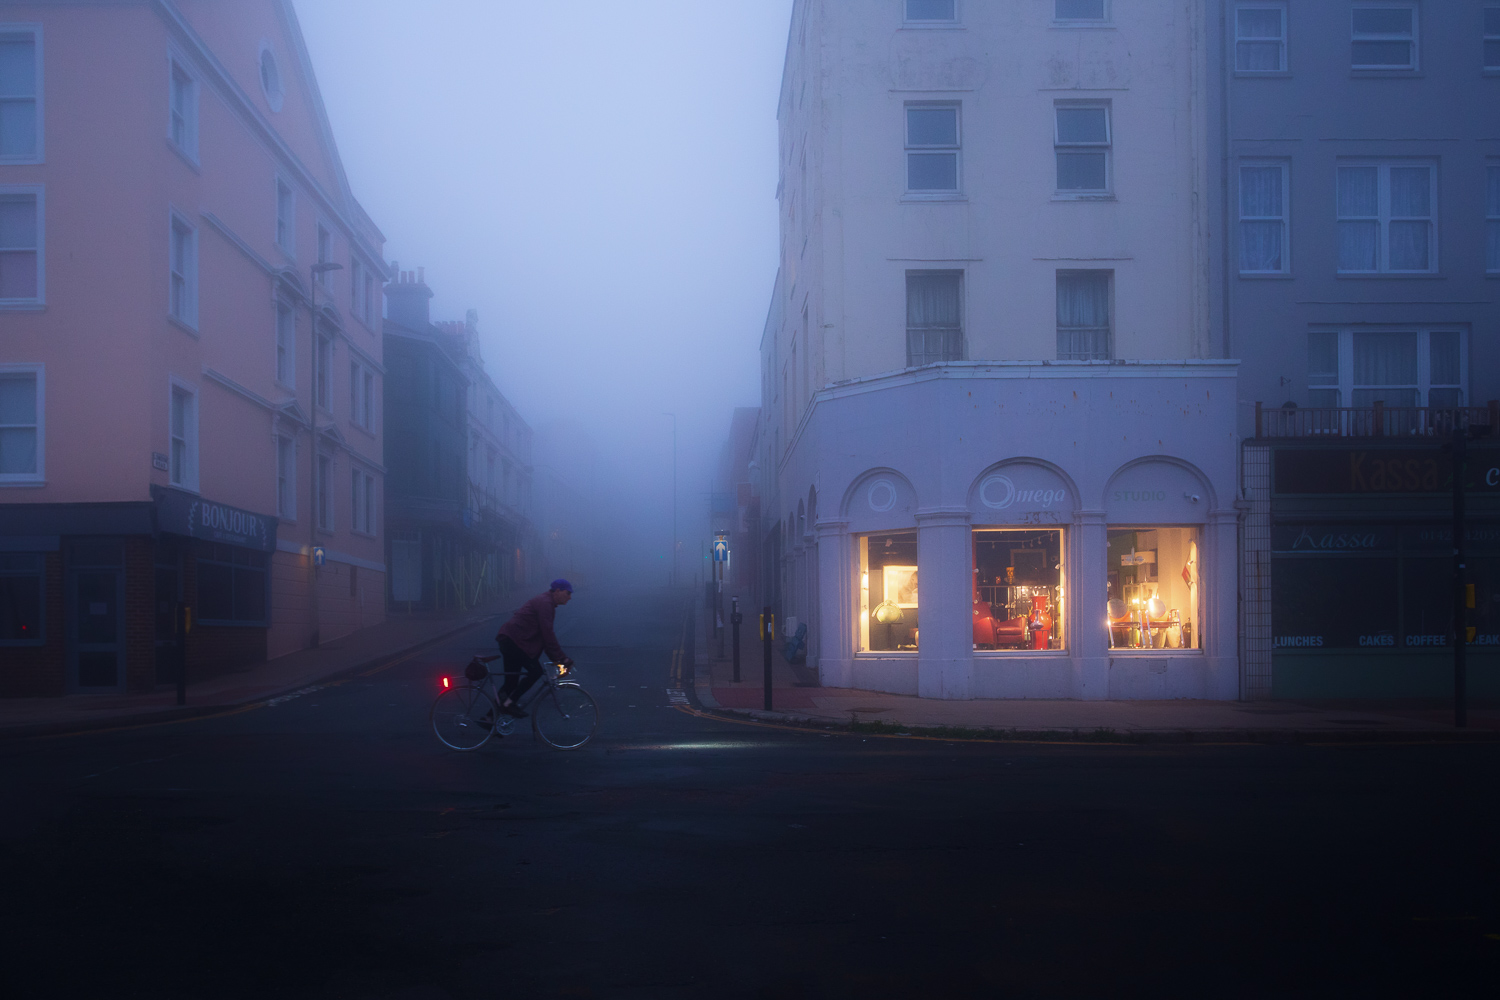 Cyclist on deserted city street at night in fog